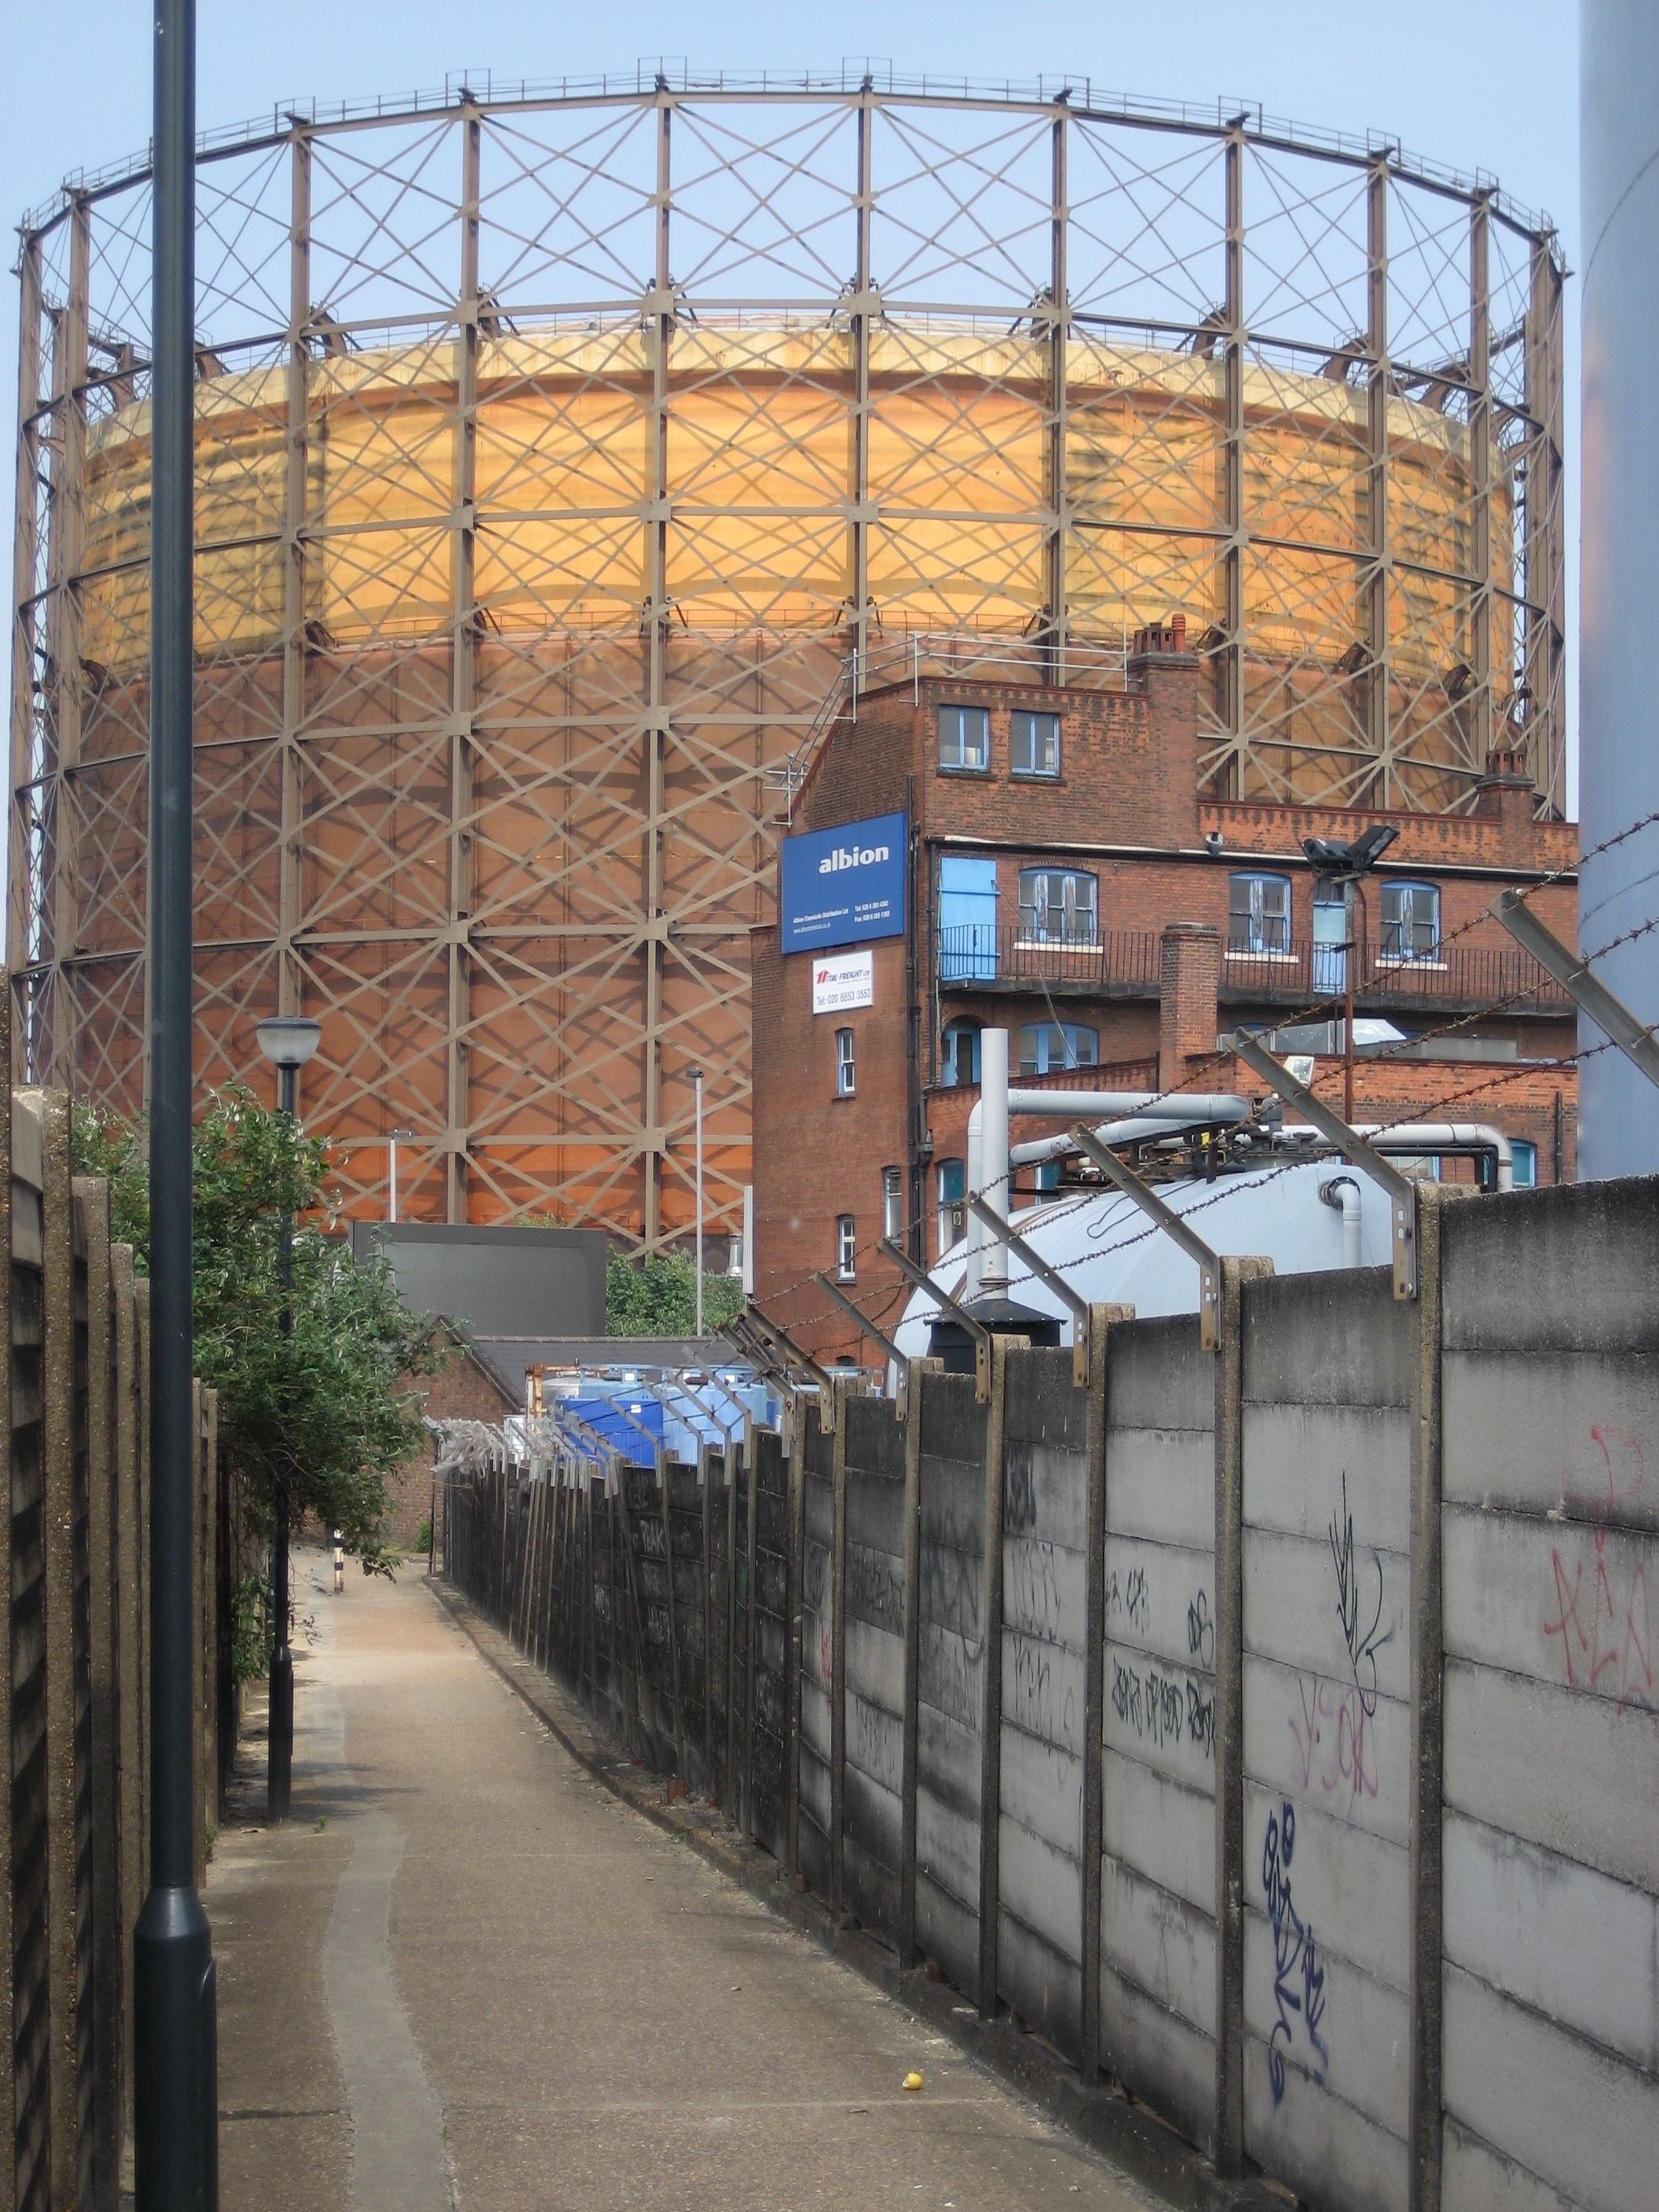 Gas Holder in Greenwich, London, England  Until the advent